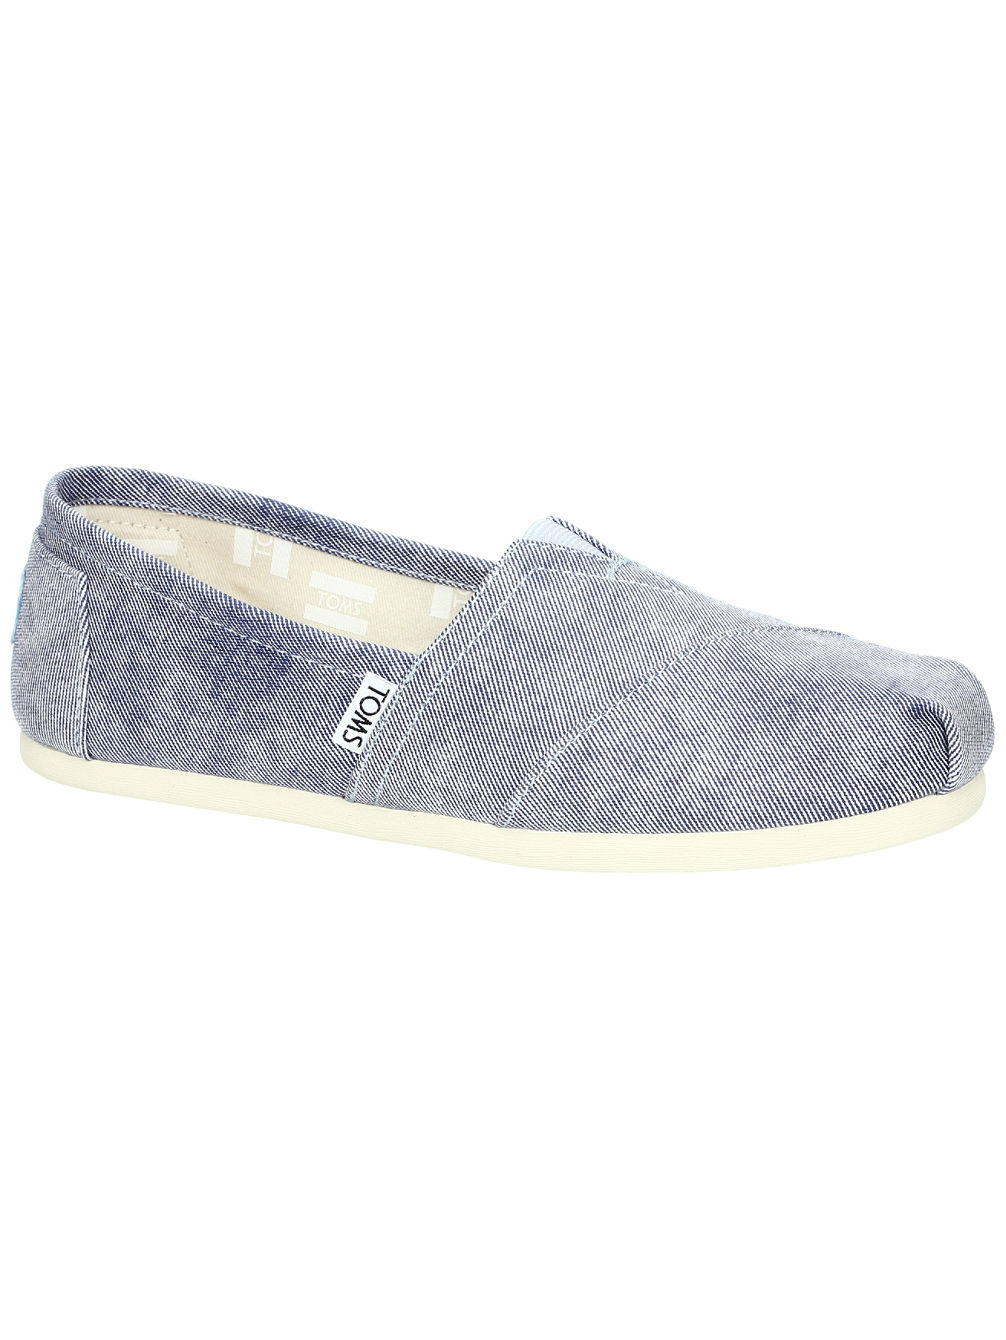 Seasonal Classic Slippers Women